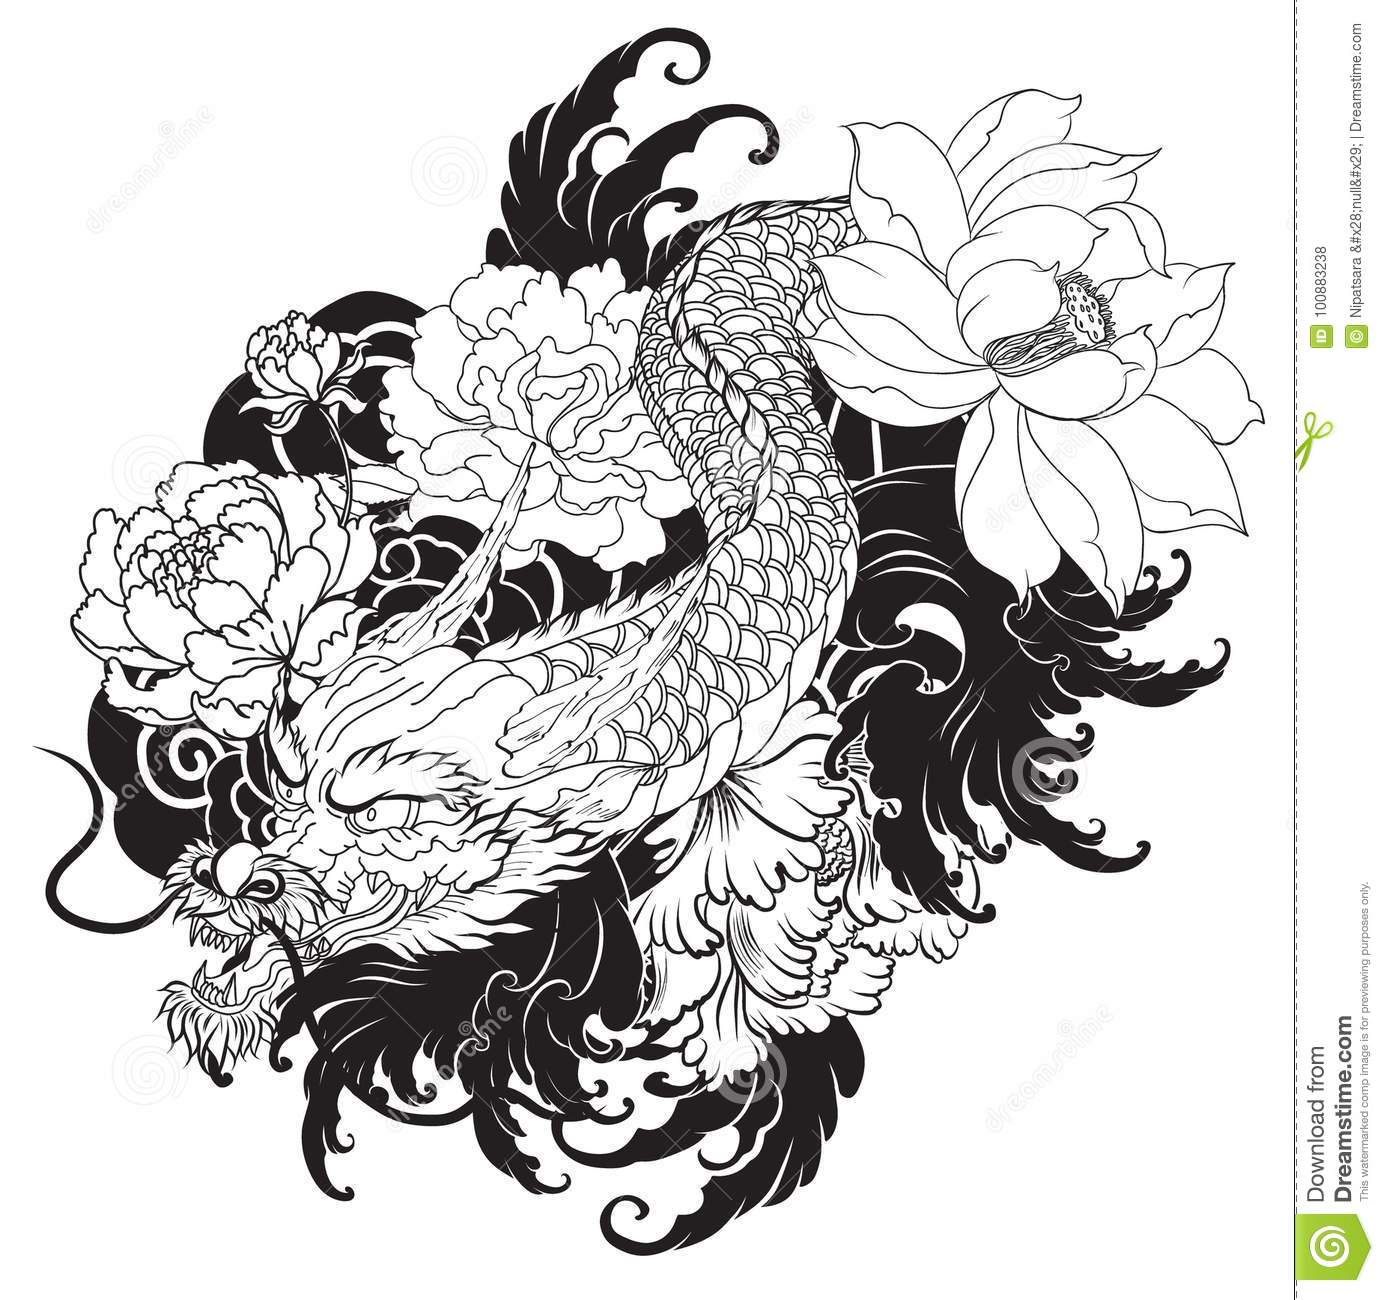 Japanese old dragon tattoo for arm stock illustration japanese old dragon tattoo for arm china abstract izmirmasajfo Images